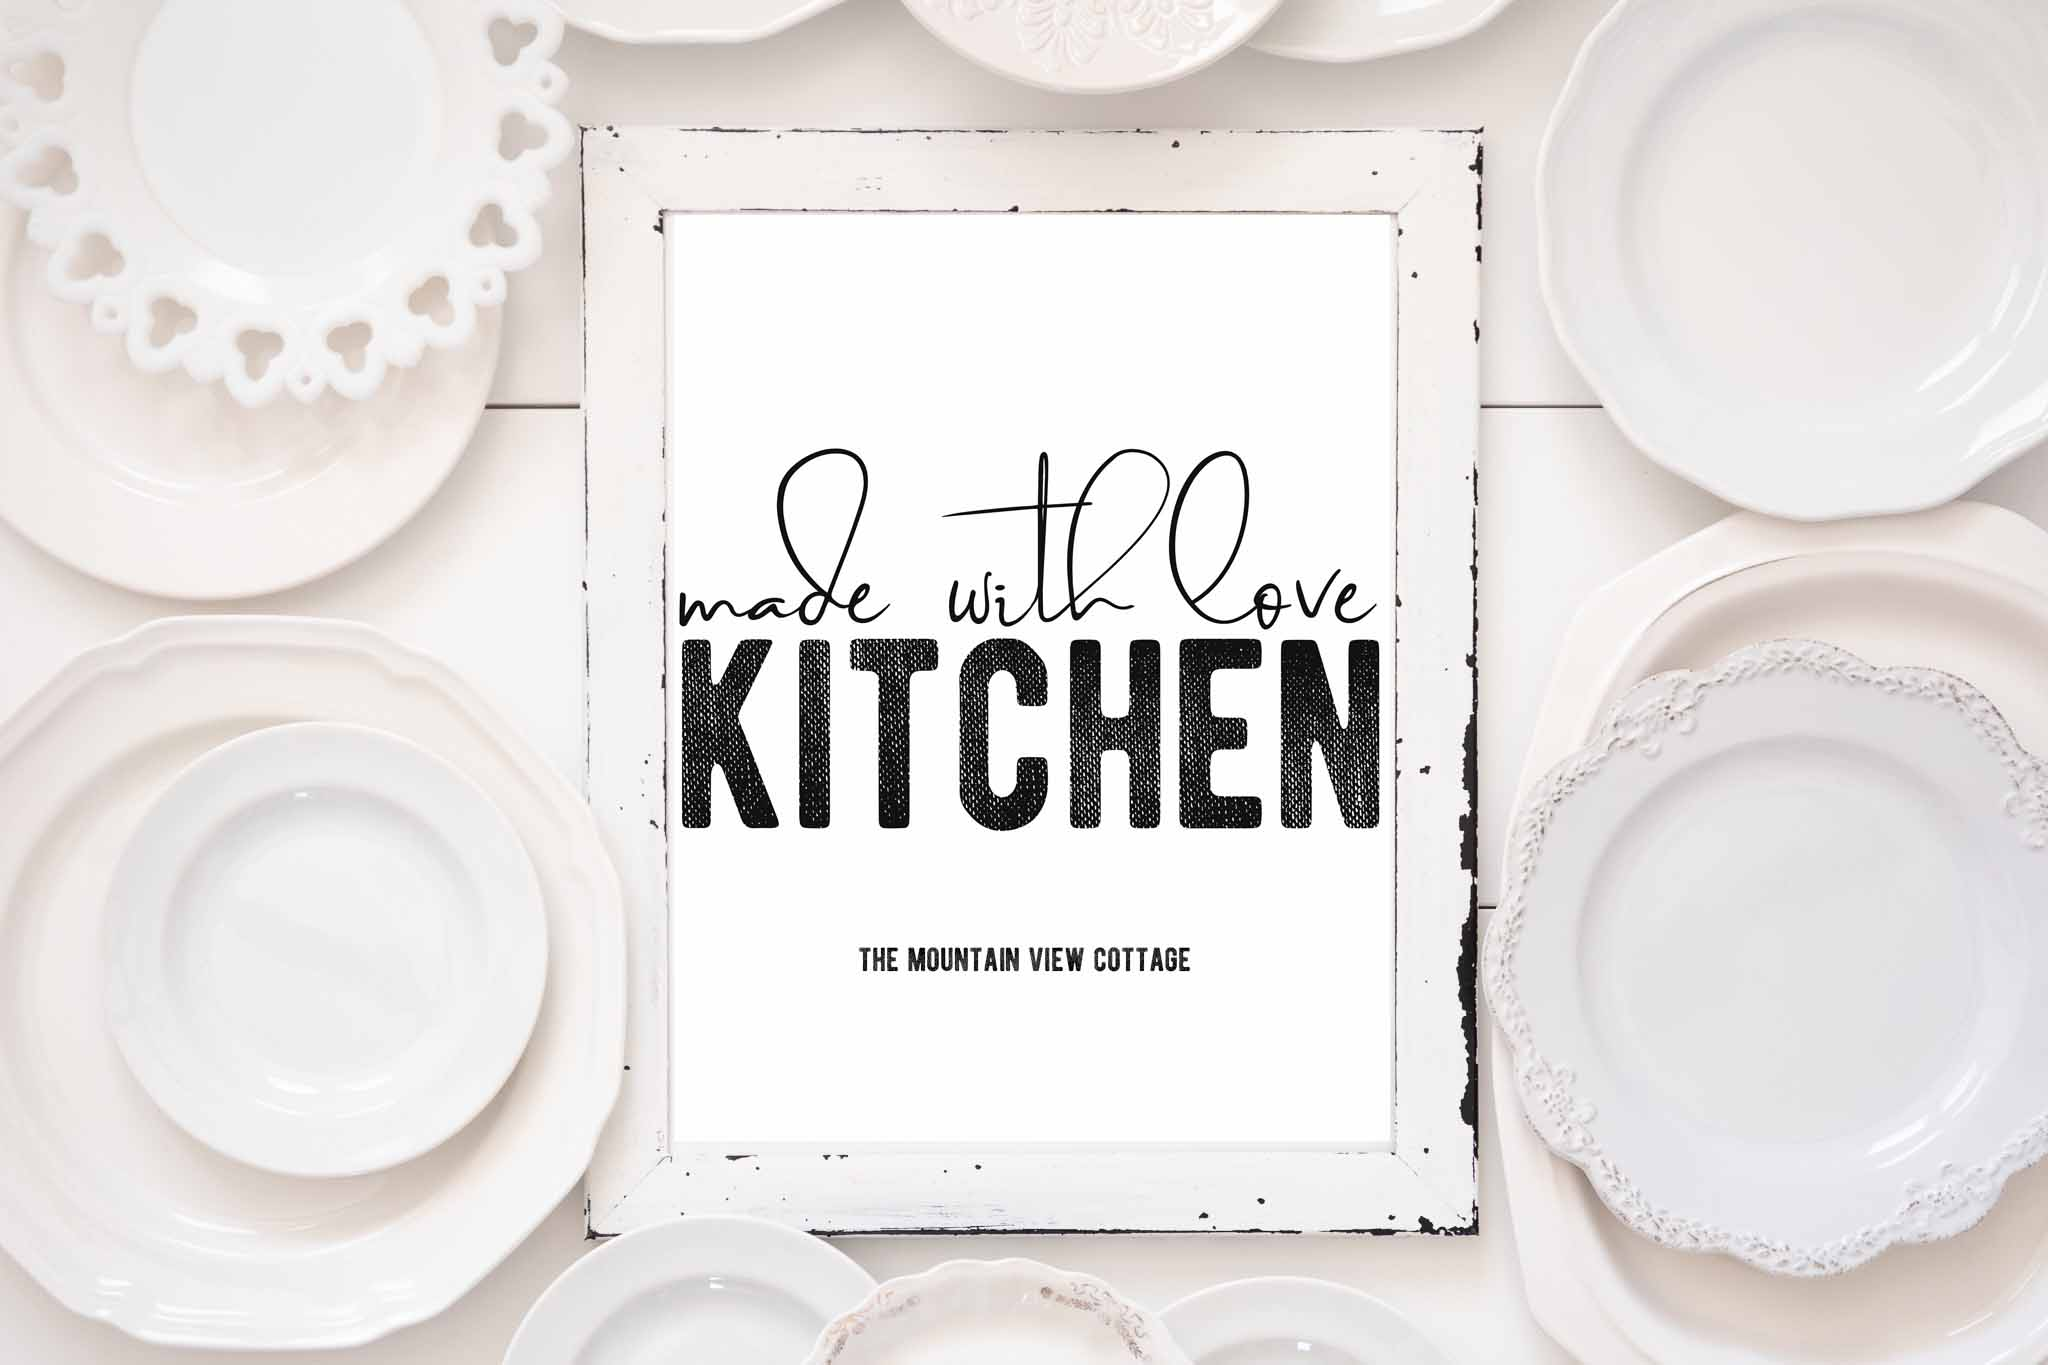 https://themountainviewcottage.net/wp-content/uploads/2018/07/Farmhouse-Printables-Kitchen-Made-with-love.jpg